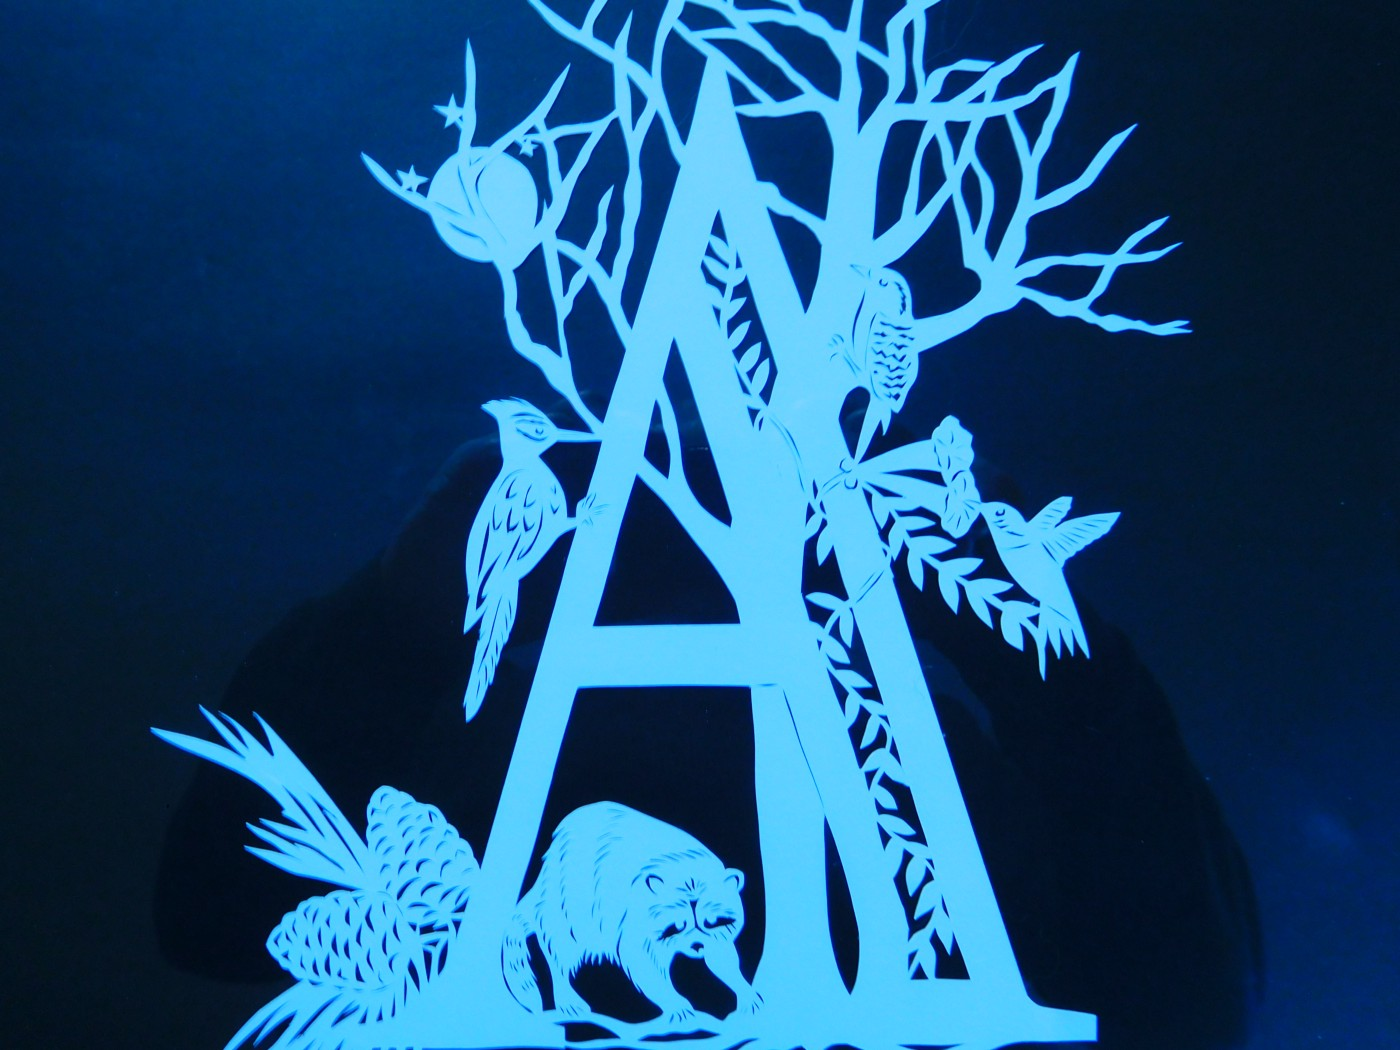 """two shades of blue papercut design for the initial letter """"A"""" with a tree and various birds plus a full moon behind the branches and a raccoon at bottom"""